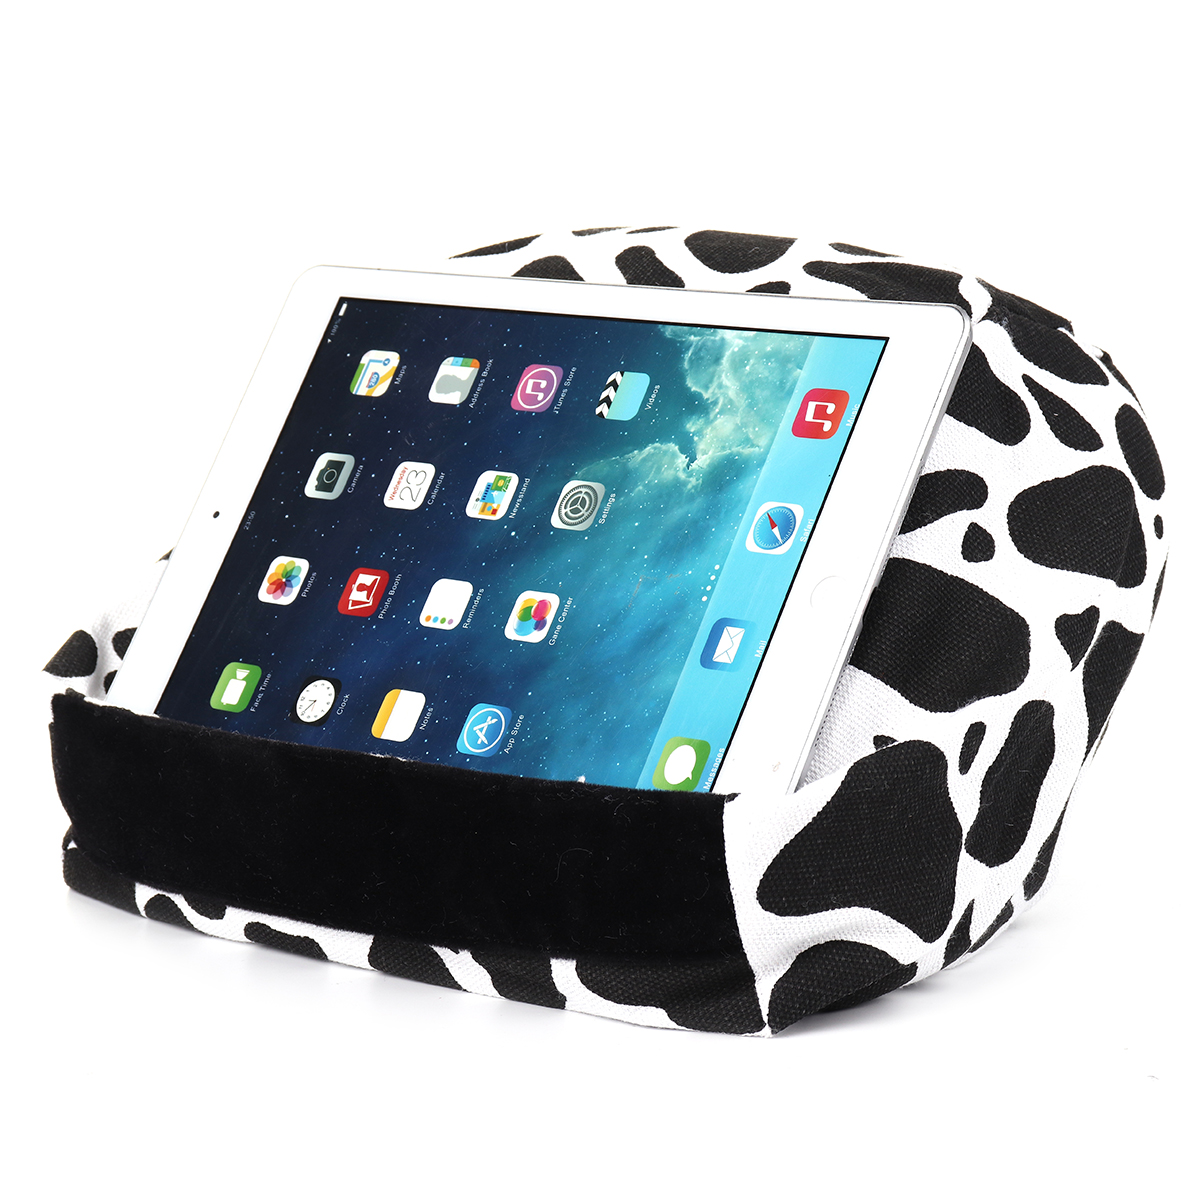 Portable Tablet Pillow Holder Book Rest Stand Foam Lap ...